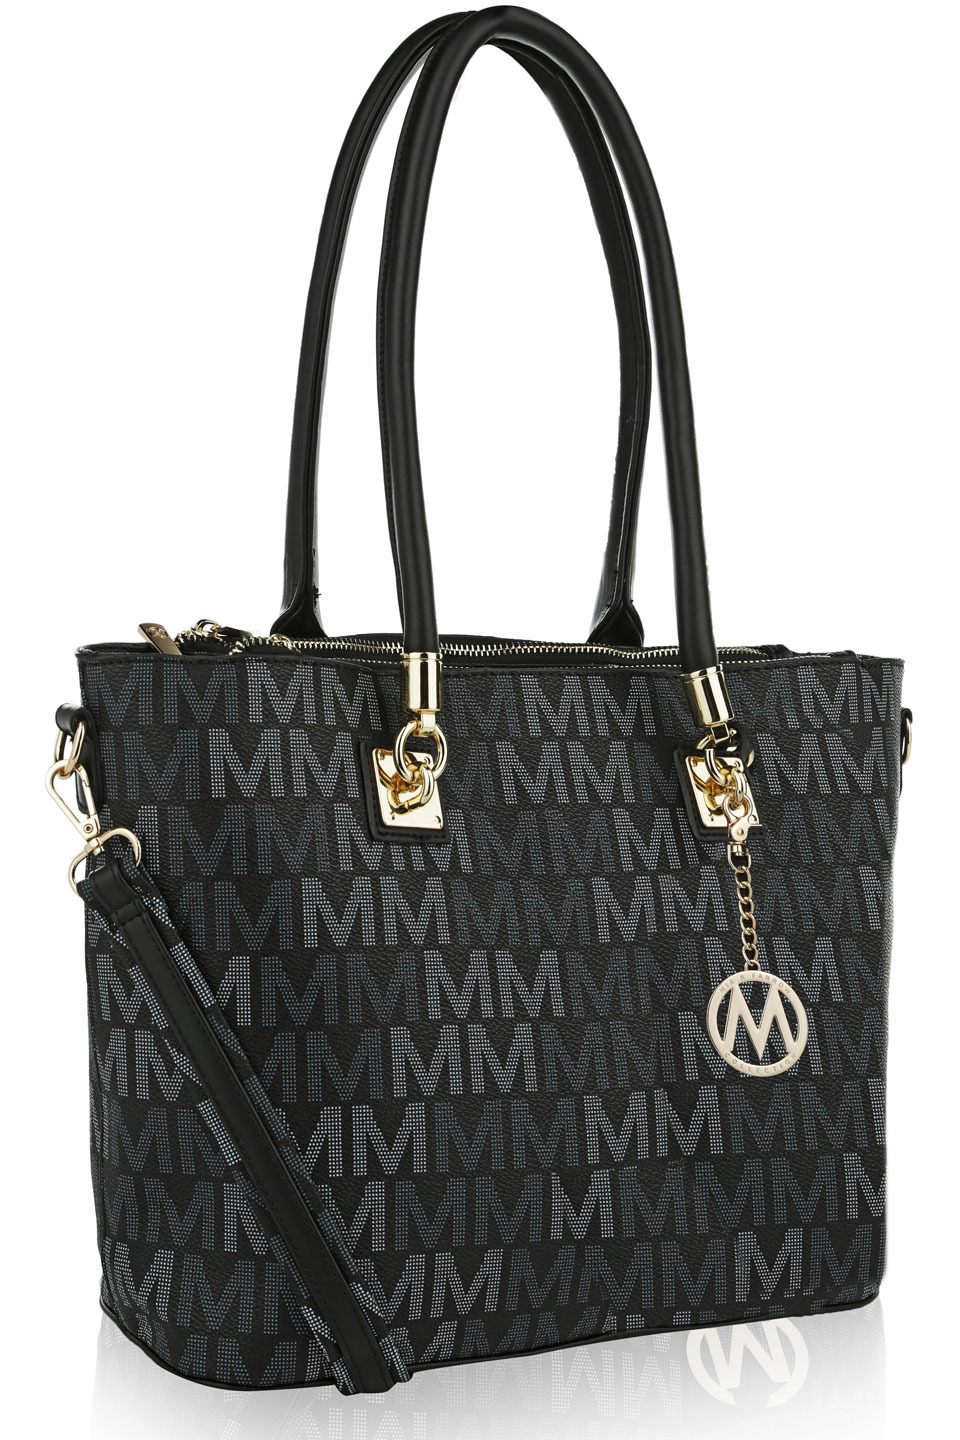 VanessaM Signature Tote in Black